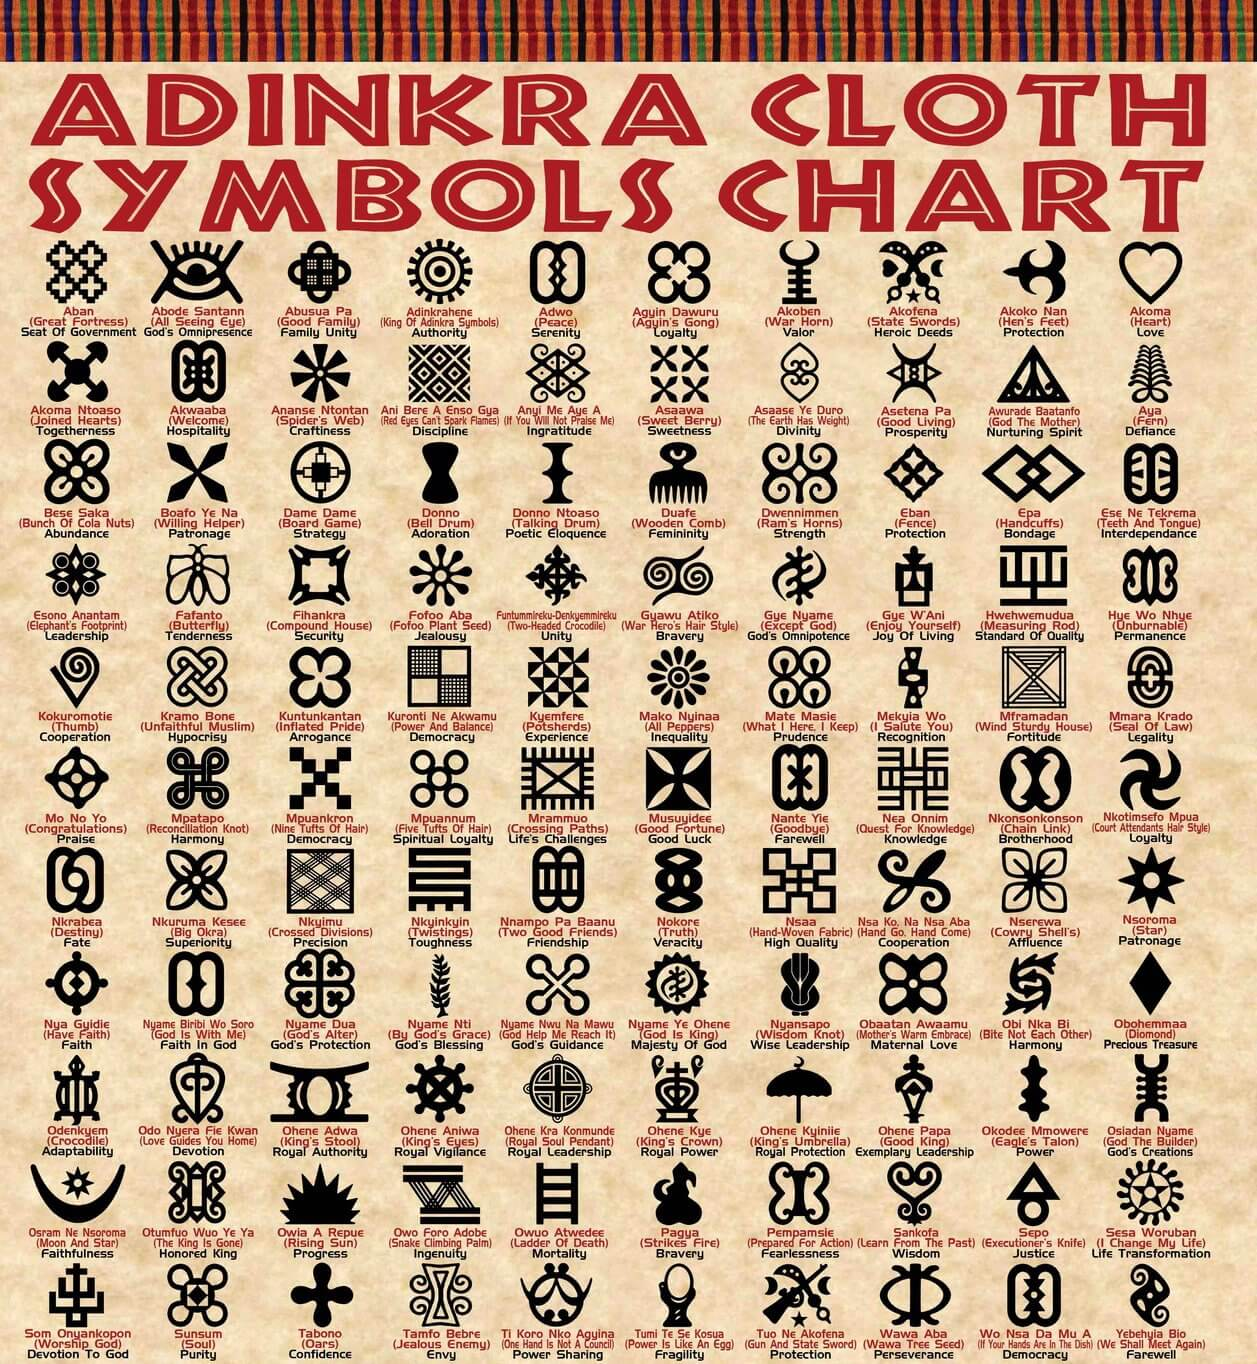 Adinkra symbol meanings chart